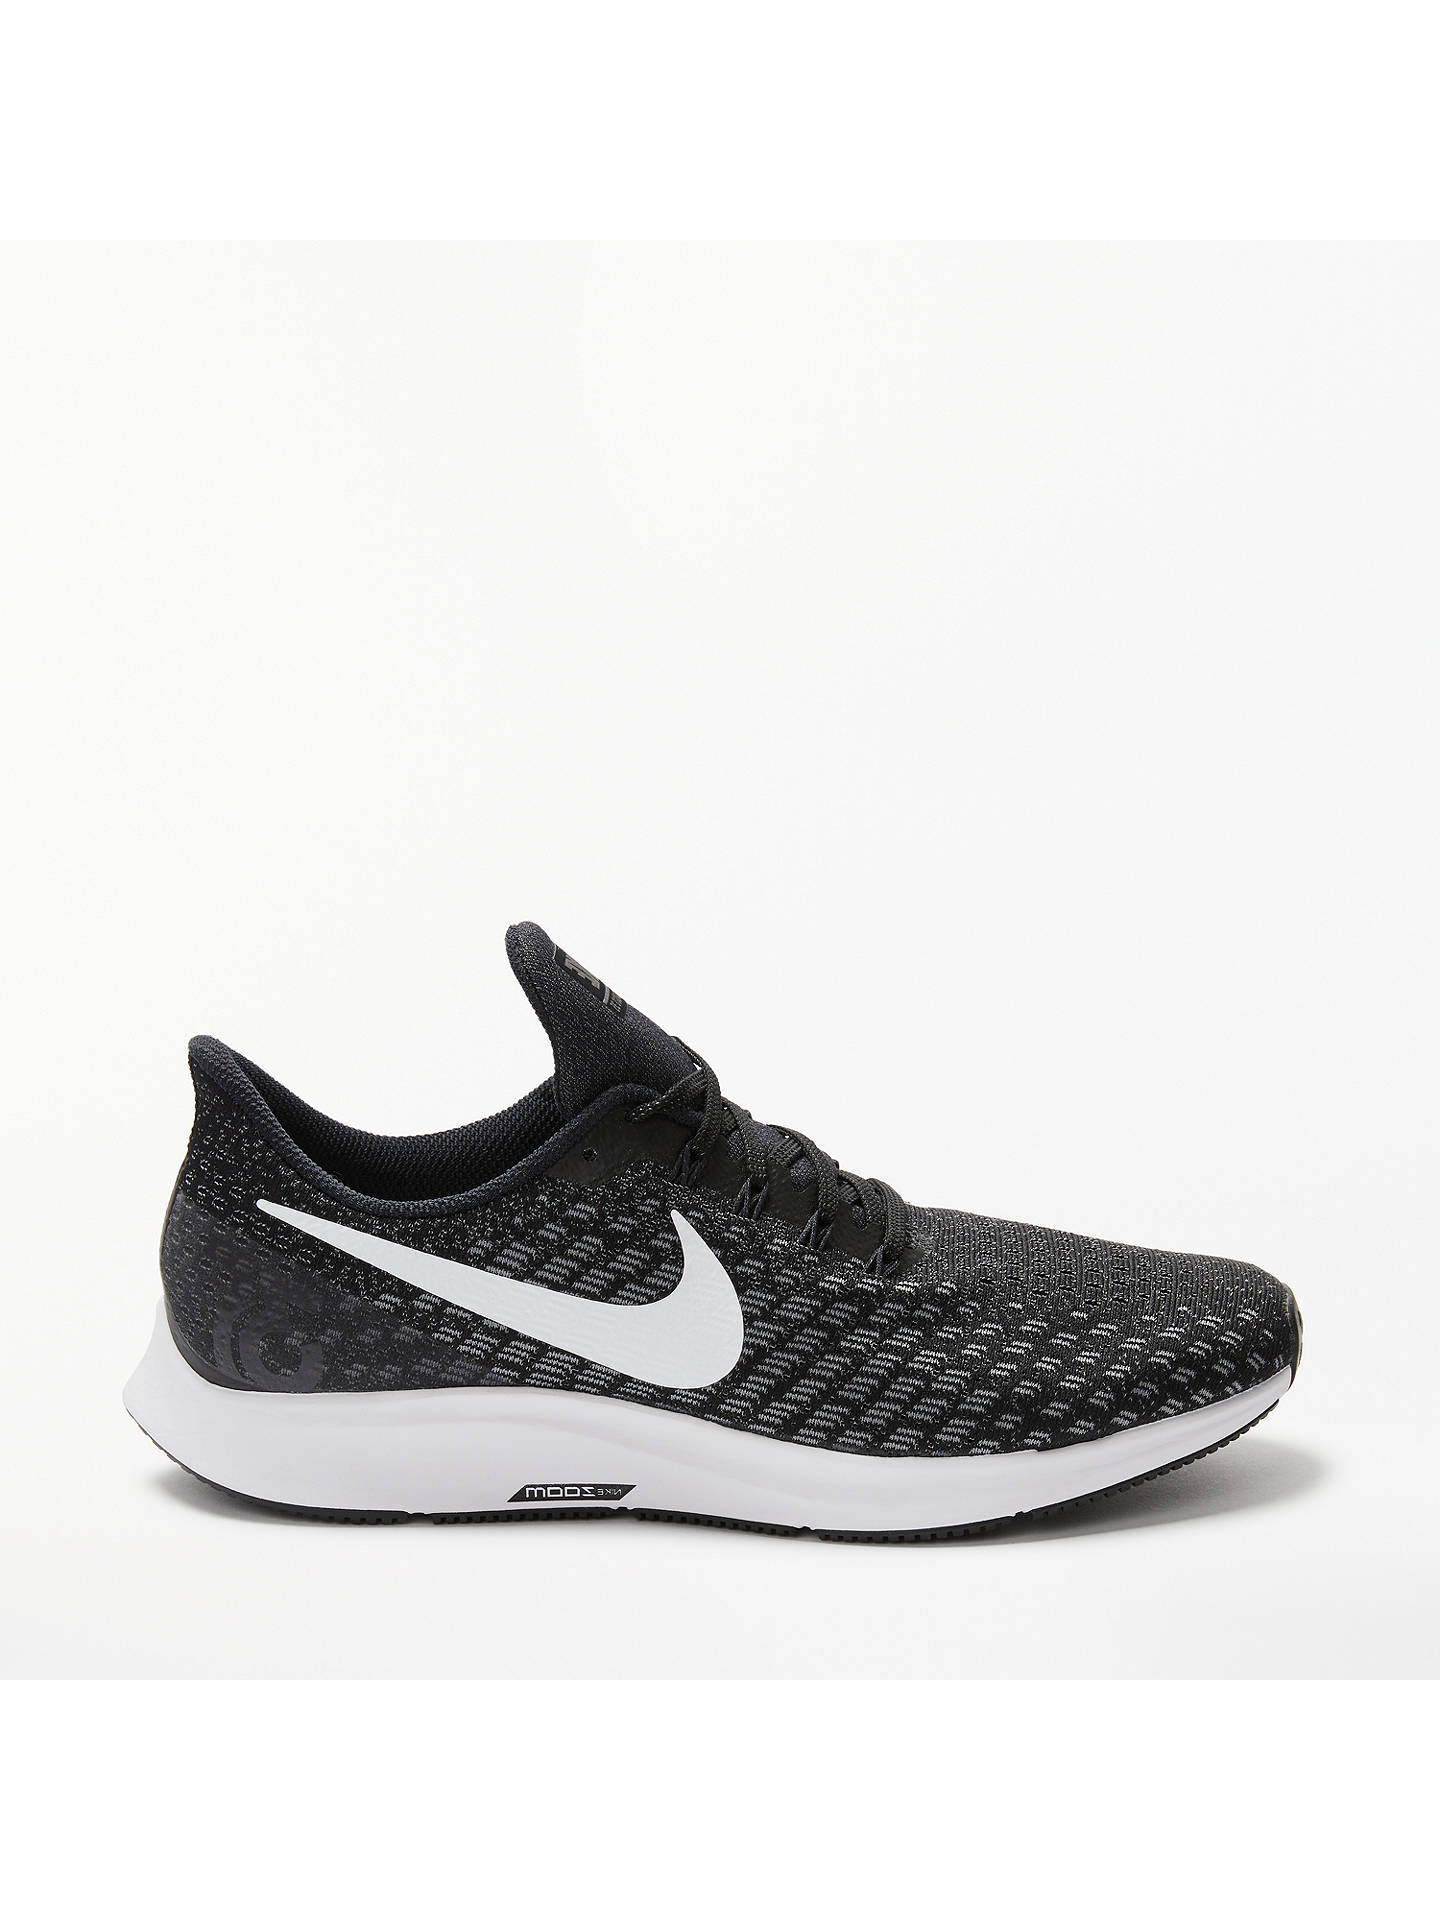 2926ce396f3 Buy Nike Air Zoom Pegasus 35 Women s Running Shoes